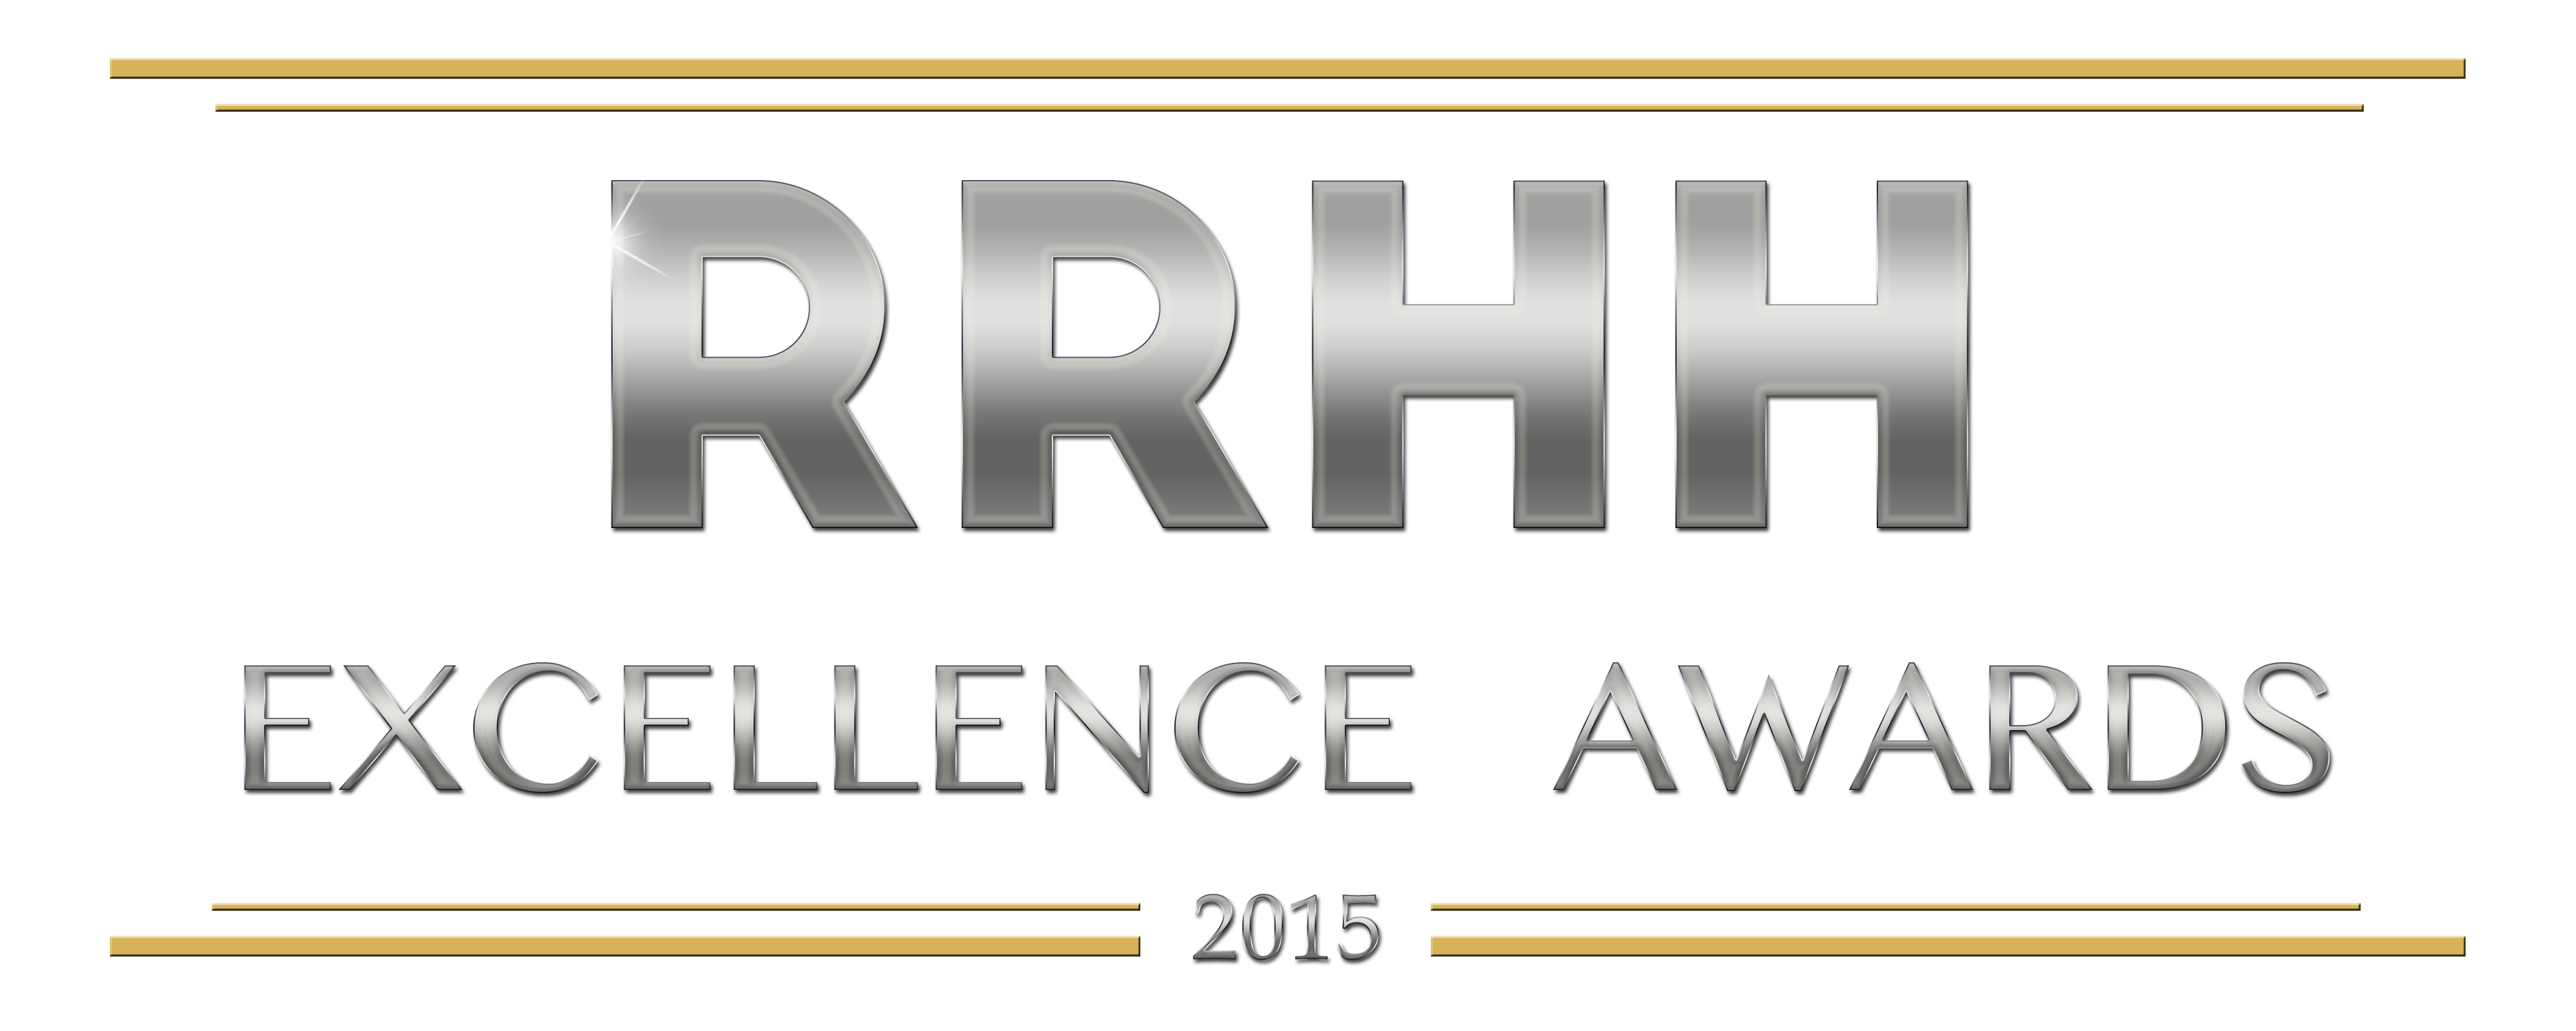 RRHH Excellence Awards